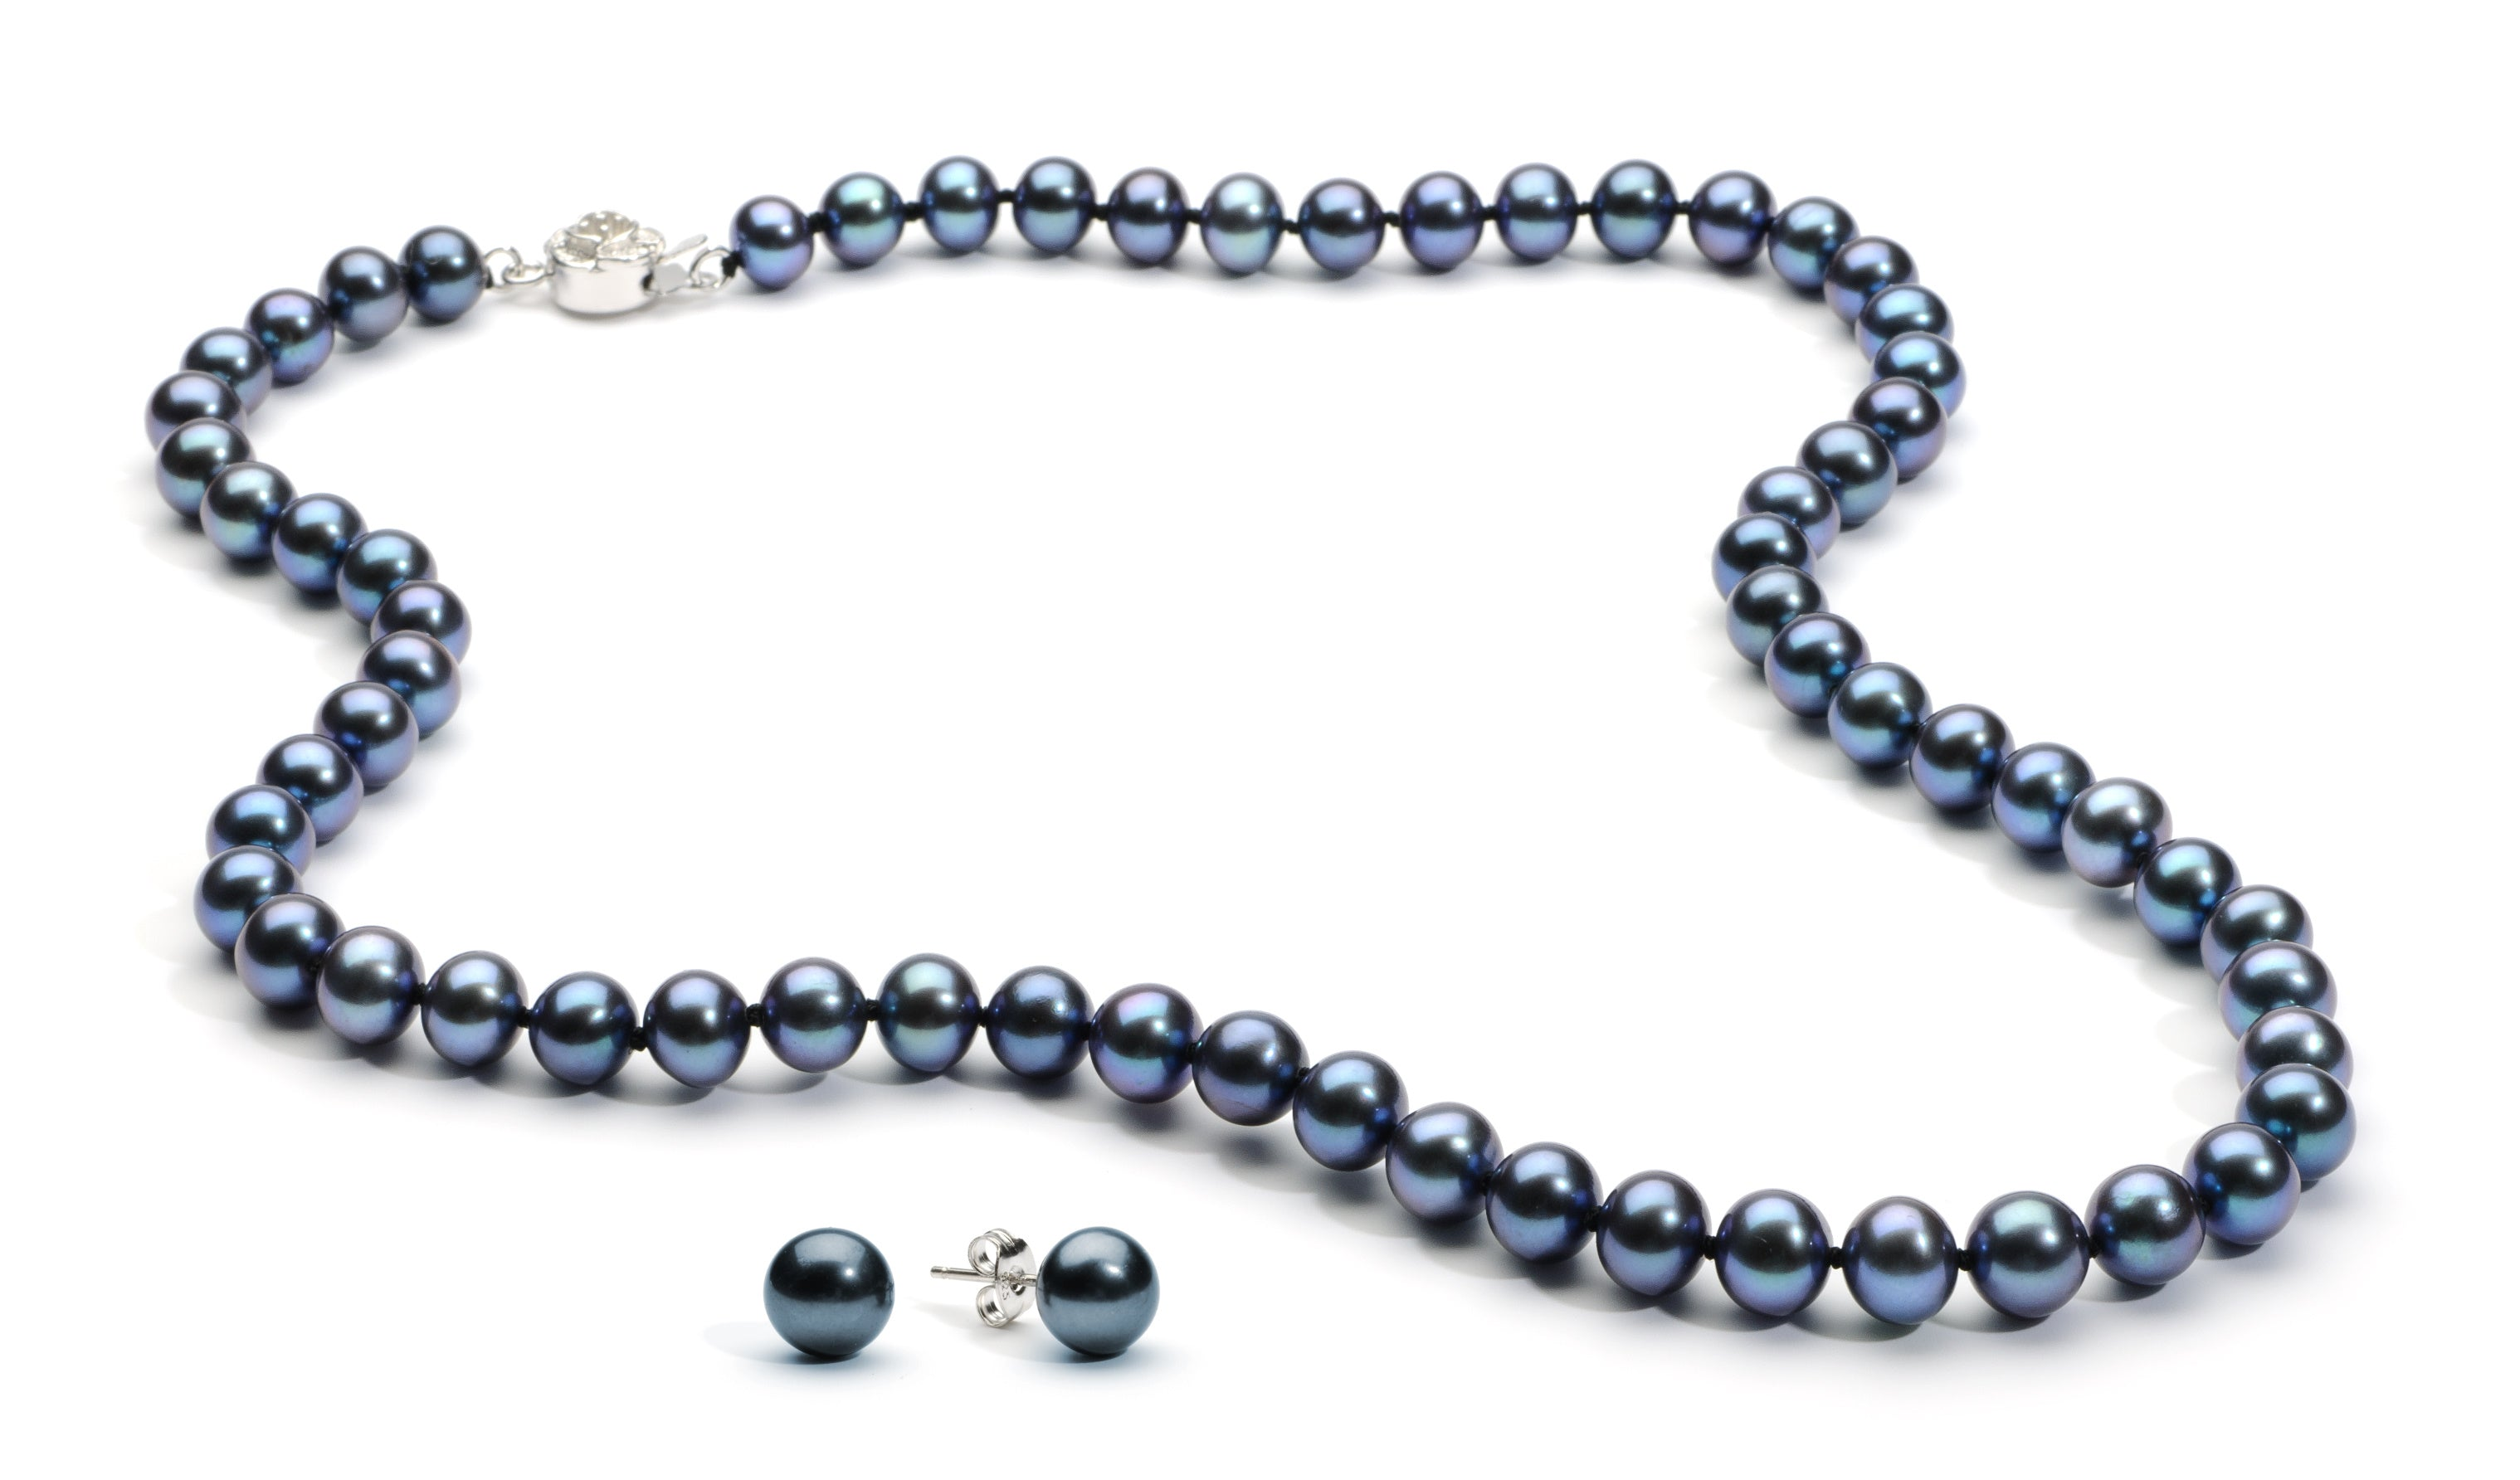 Necklace/Earrings Set 7.0-8.0 mm Black Freshwater Pearls